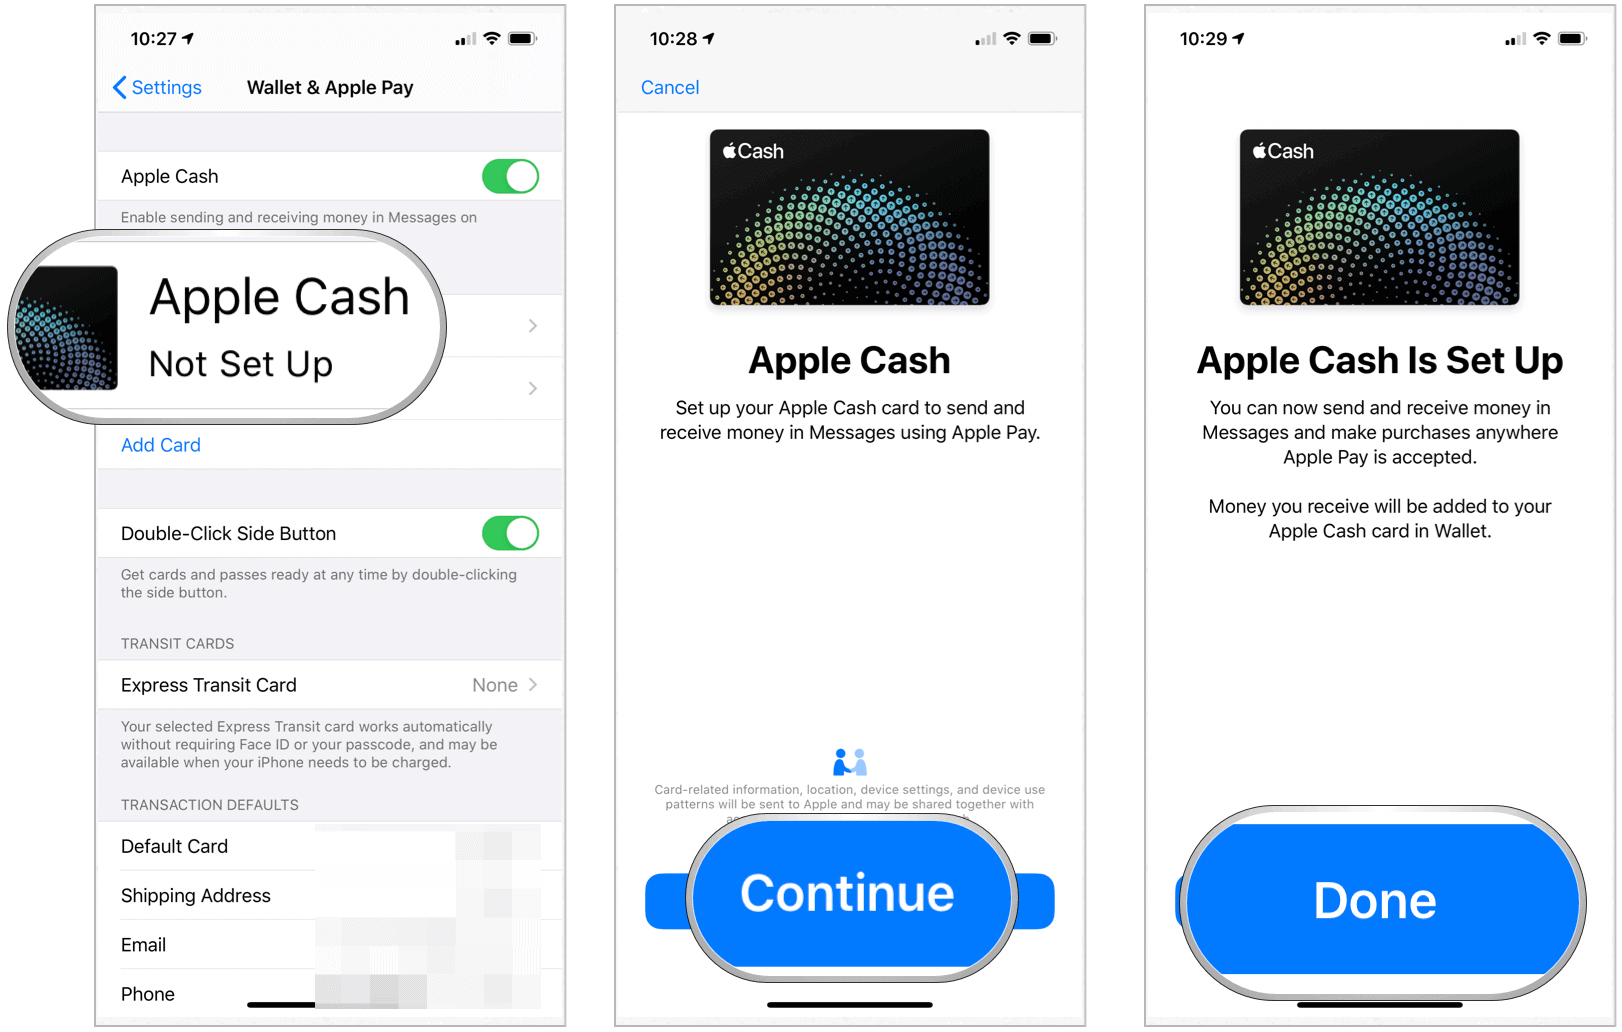 Apple Cash setup